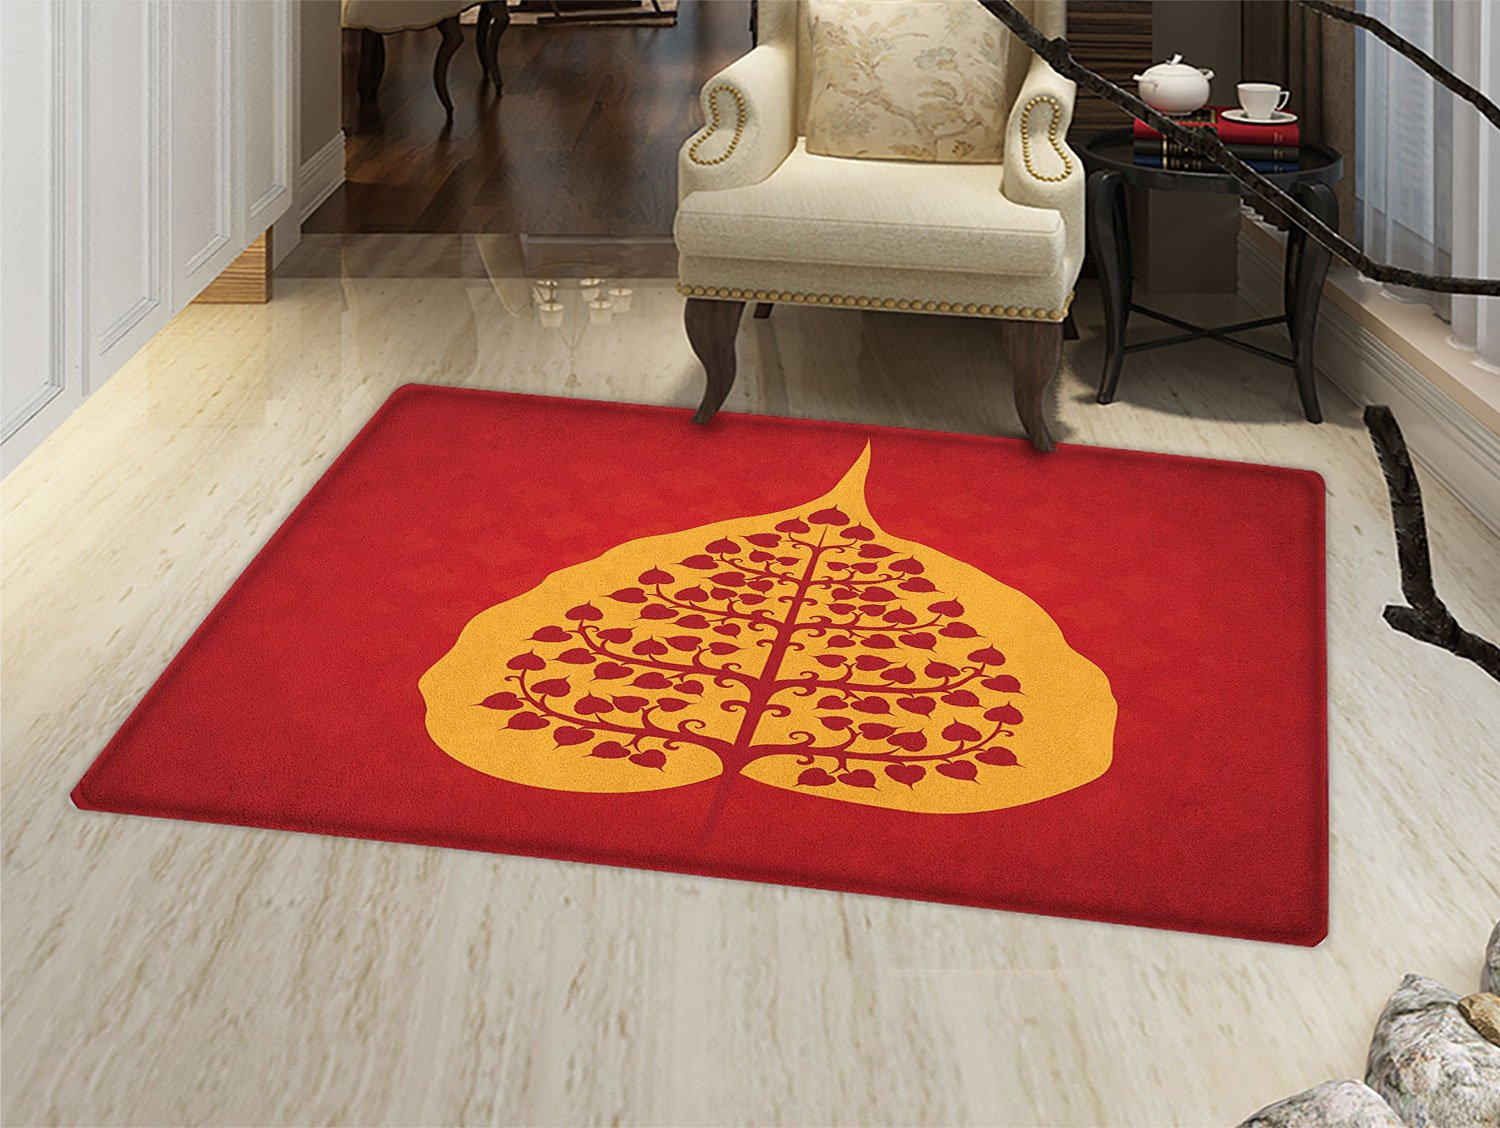 smallbeefly Leaf Bath Mats Carpet Artistic Design of Bodhi Tree Nature and Religion Yoga Meditation Floor Mat Pattern Vermilion Ruby and Marigold